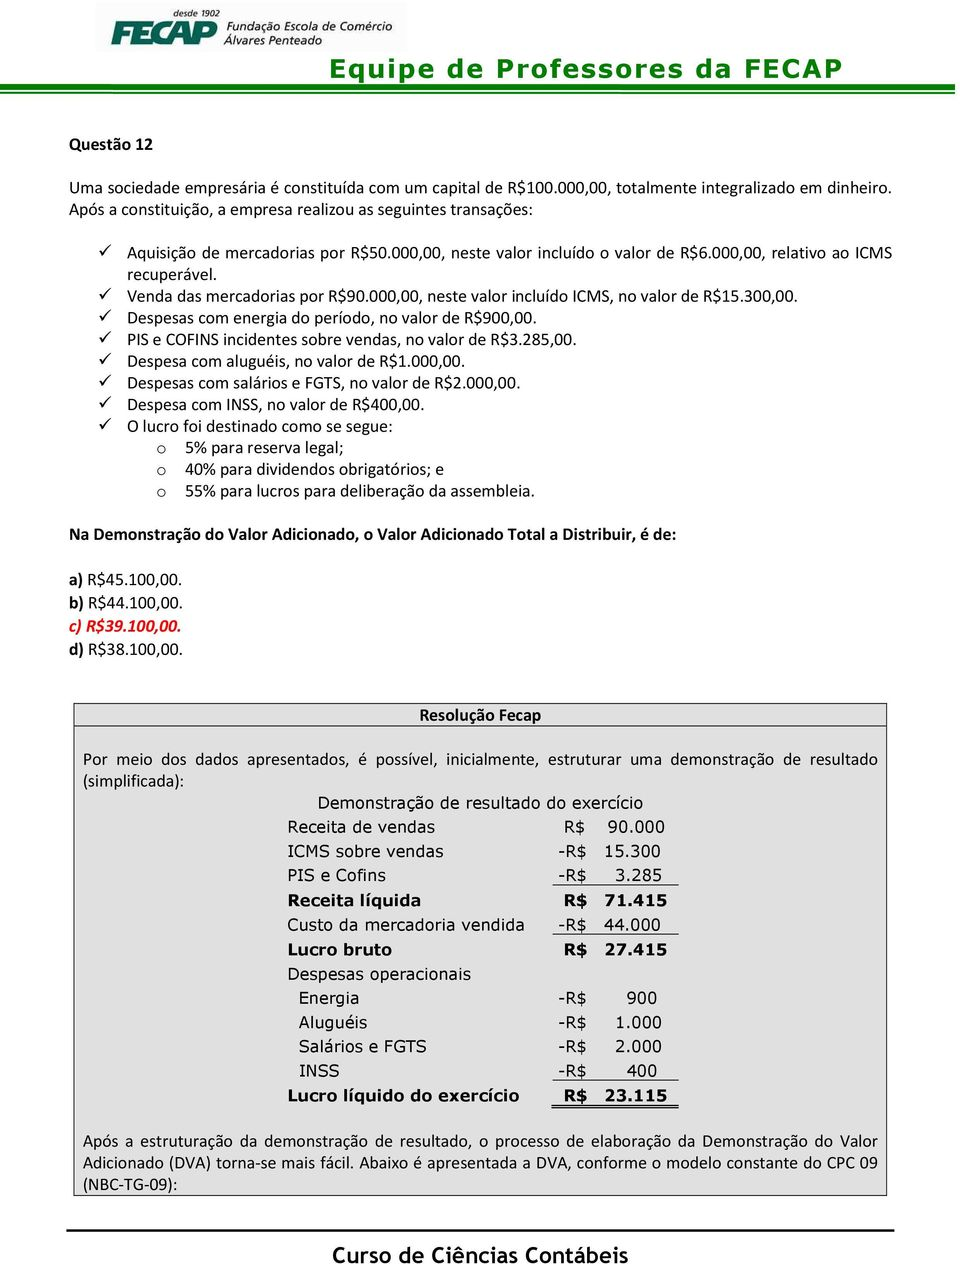 Venda das mercadorias por R$90.000,00, neste valor incluído ICMS, no valor de R$15.300,00. Despesas com energia do período, no valor de R$900,00. PIS e COFINS incidentes sobre vendas, no valor de R$3.